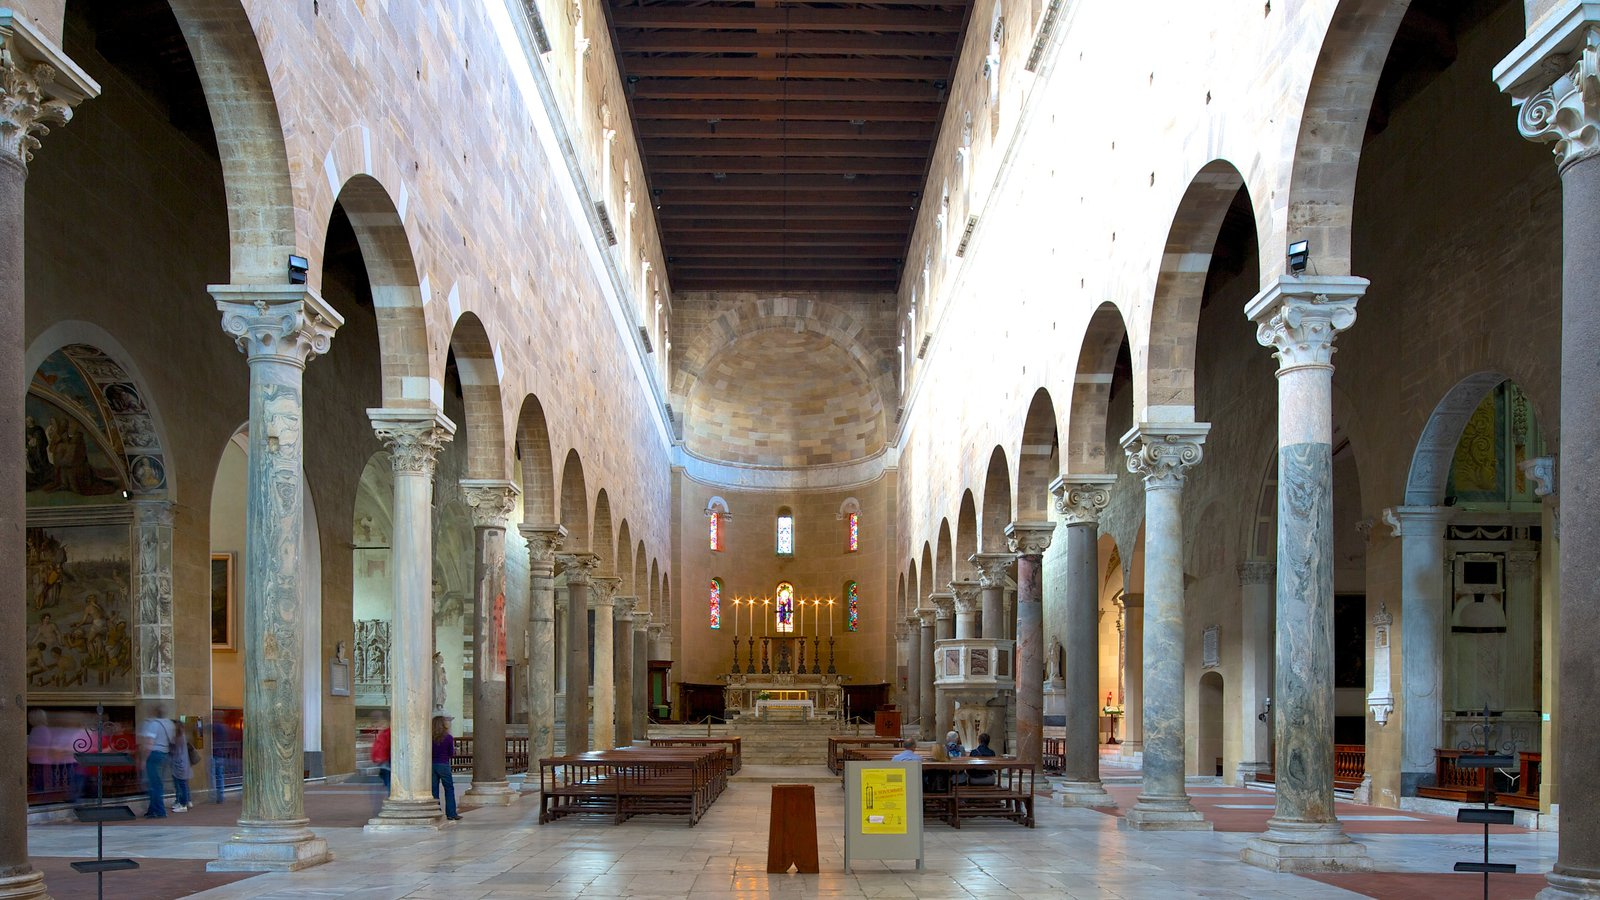 Basilica di San Frediano featuring interior views, religious aspects and heritage architecture